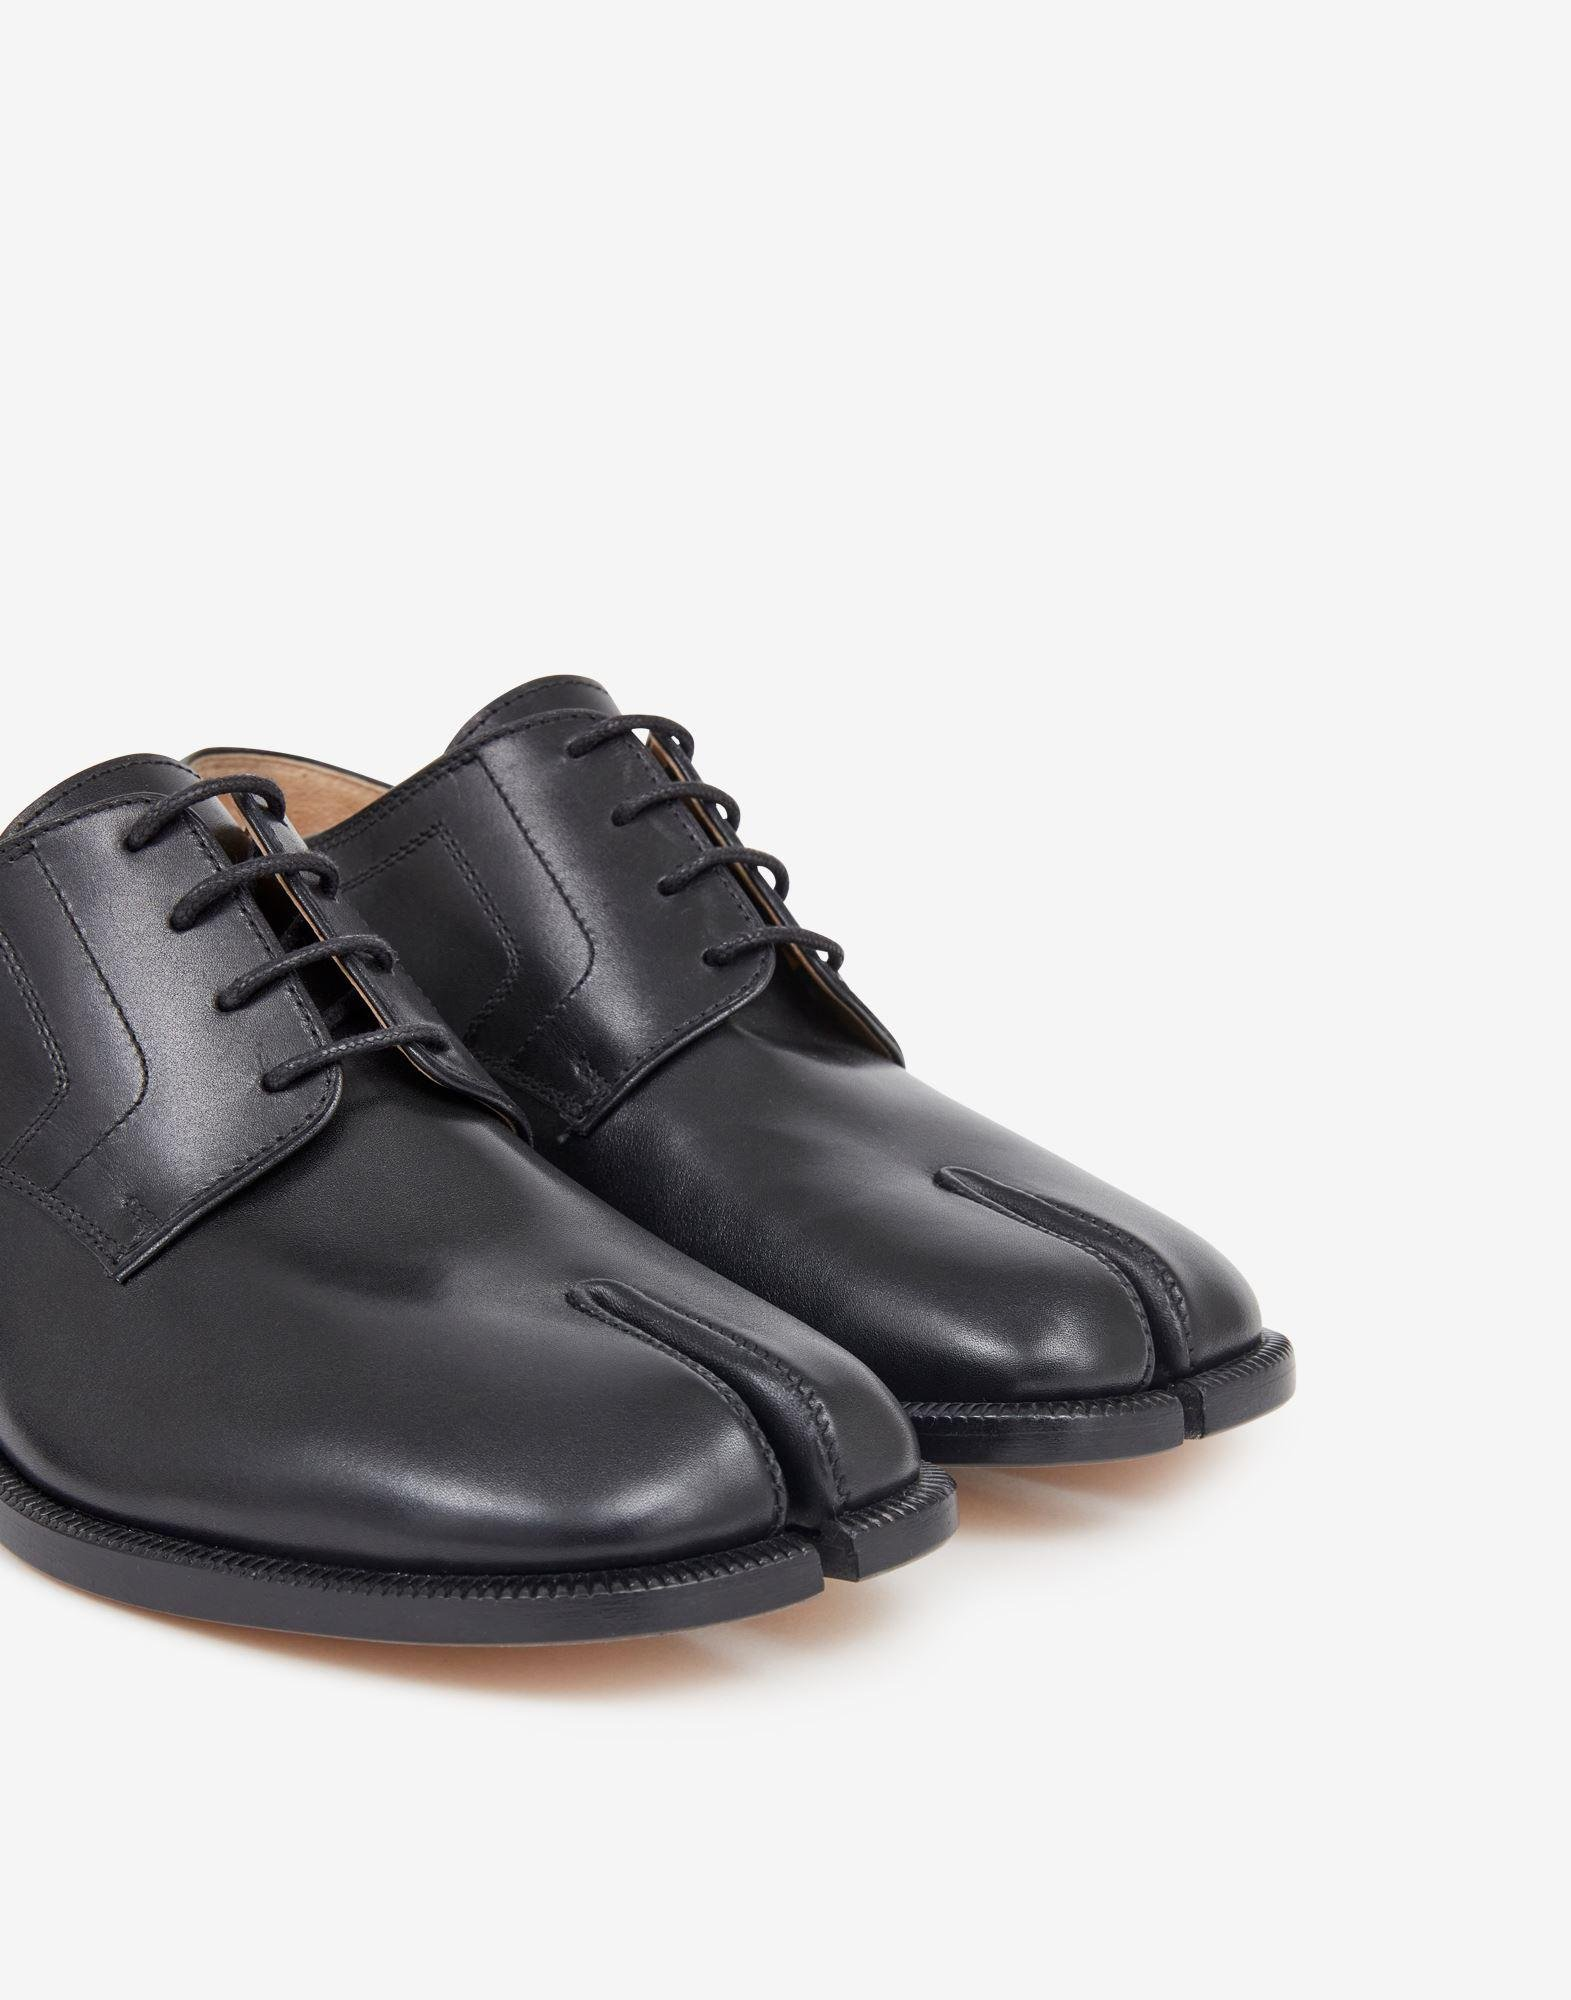 Tabi lace-up shoes 4